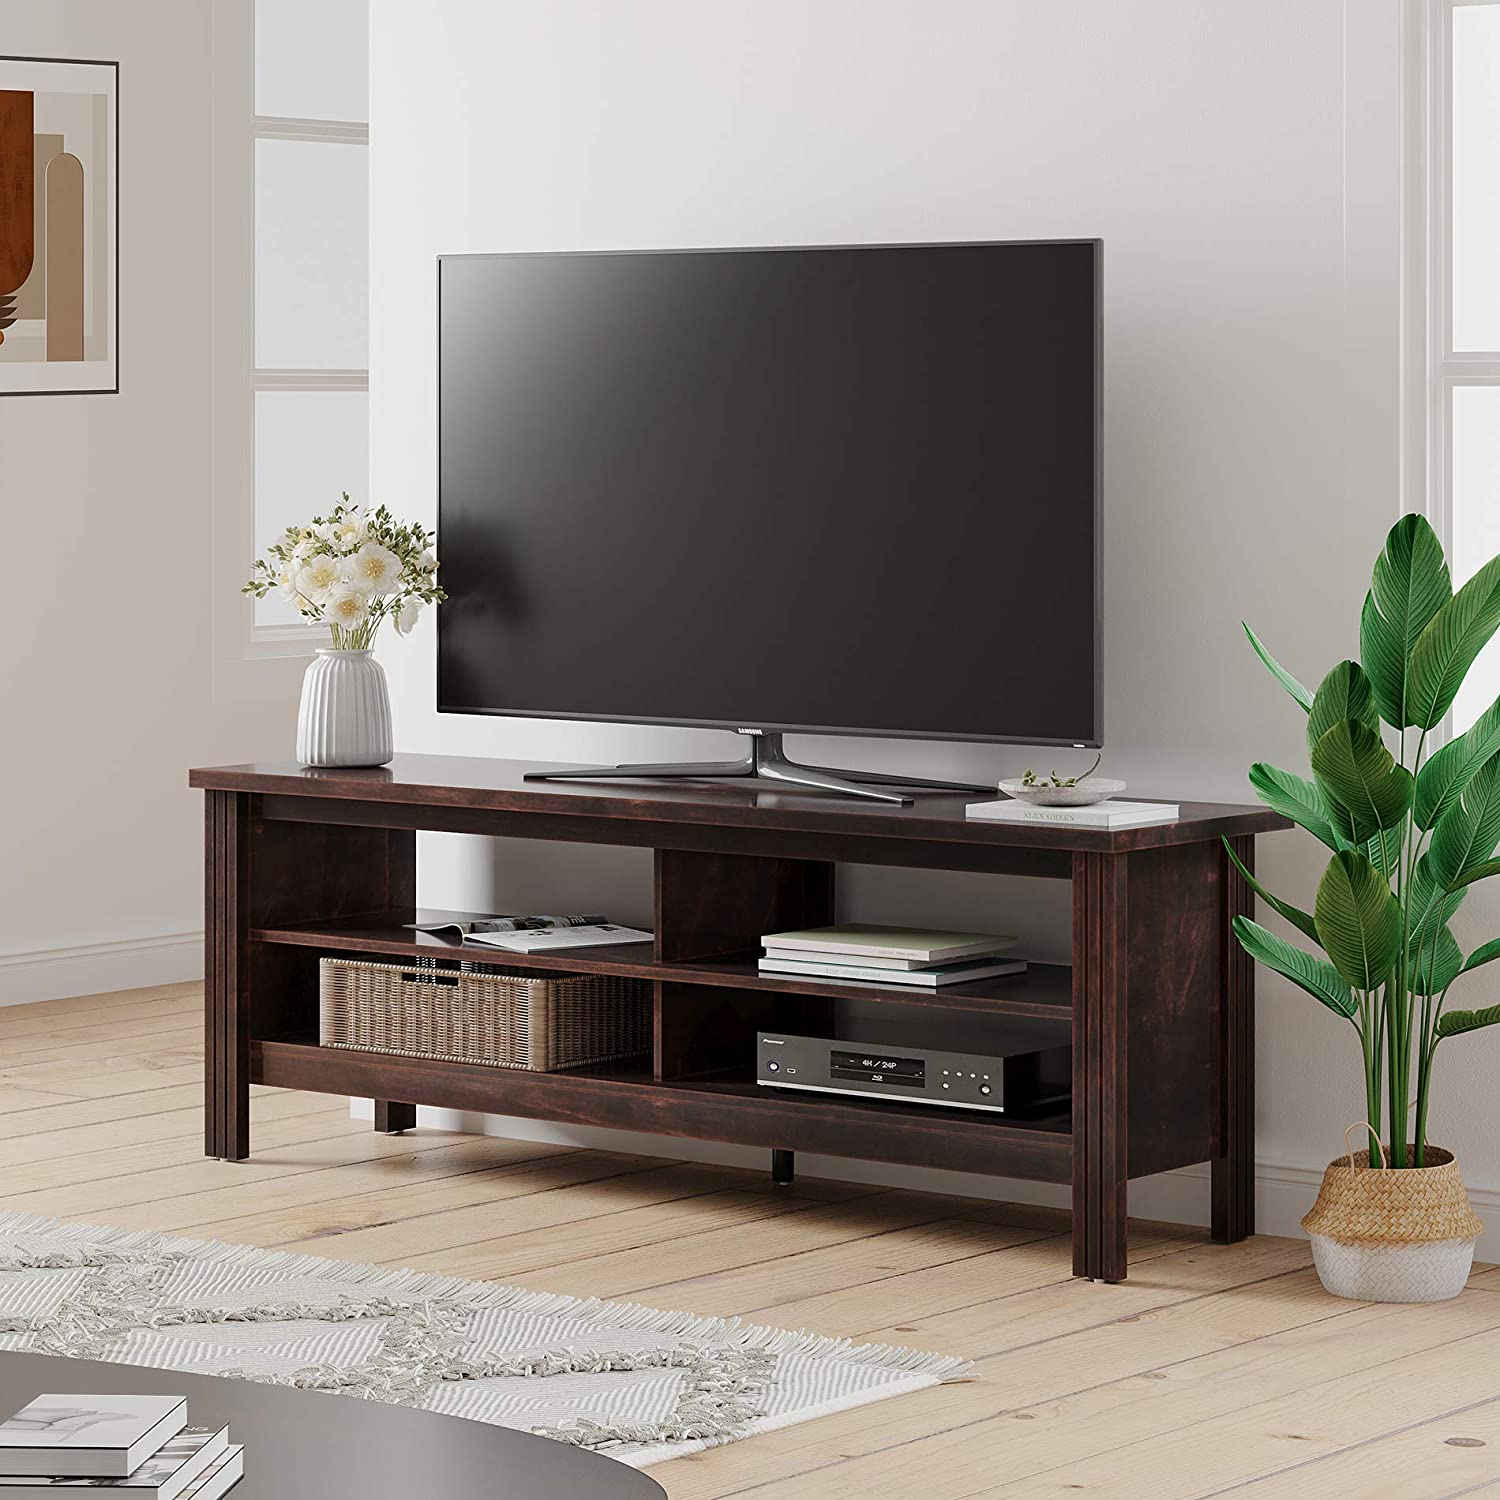 WAMPAT Farmhouse Wood TV Stand for 65 inch Flat Screen, Media Console Storage Cabinet, Entertainment Center for Living Room(Brown, 59 inch)